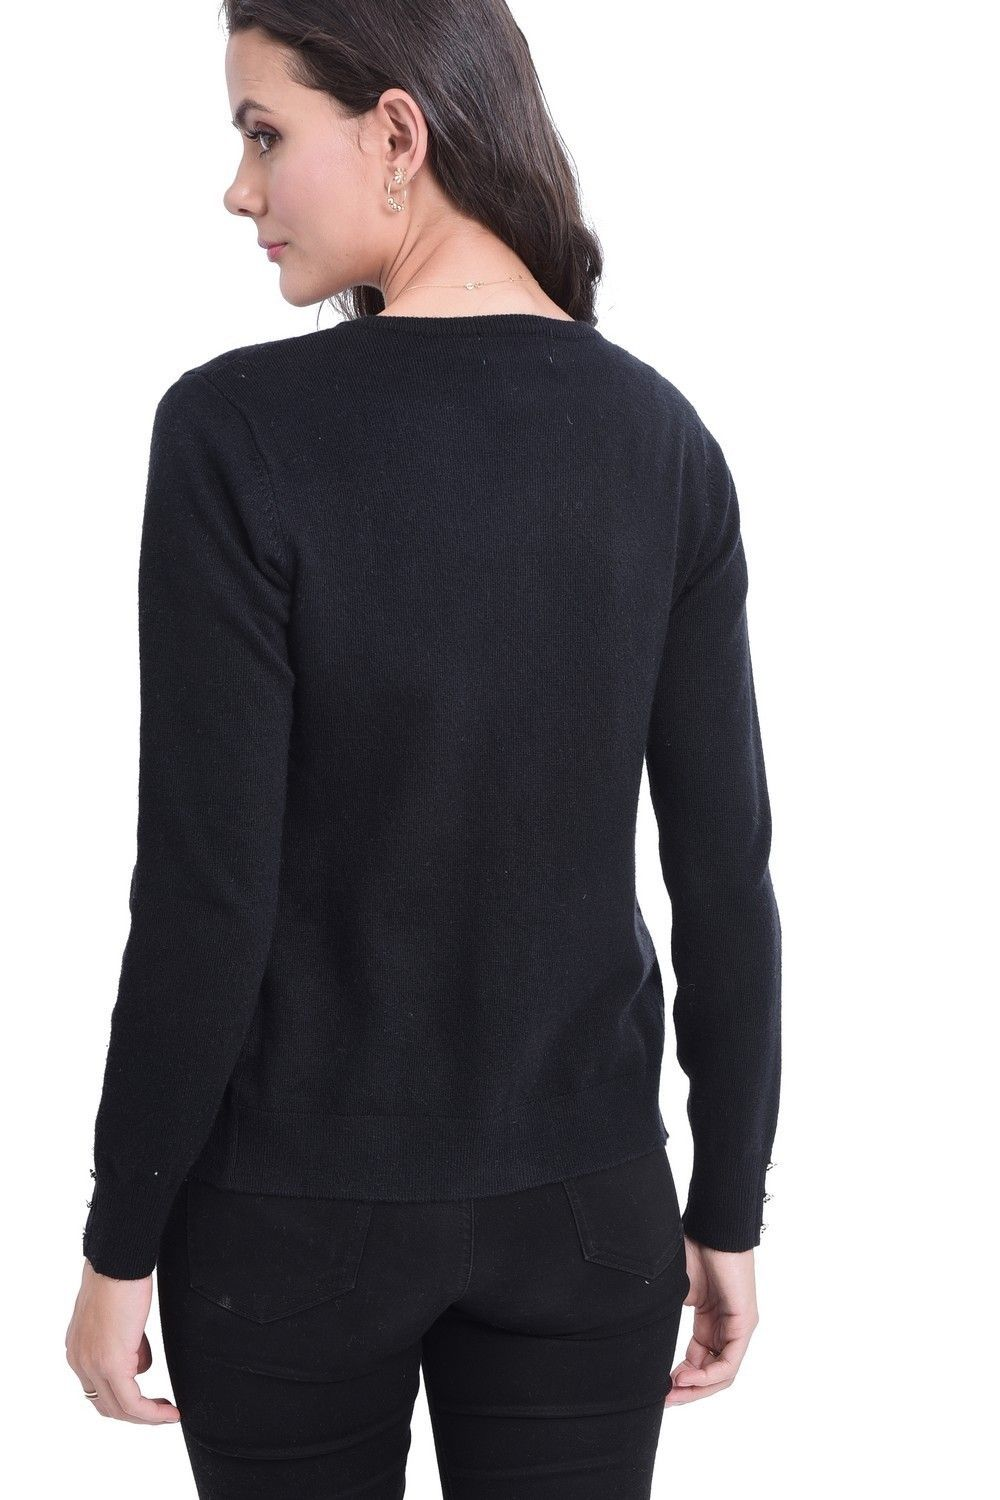 C&JO Round Neck Cardigan with Silver Buttons in Black